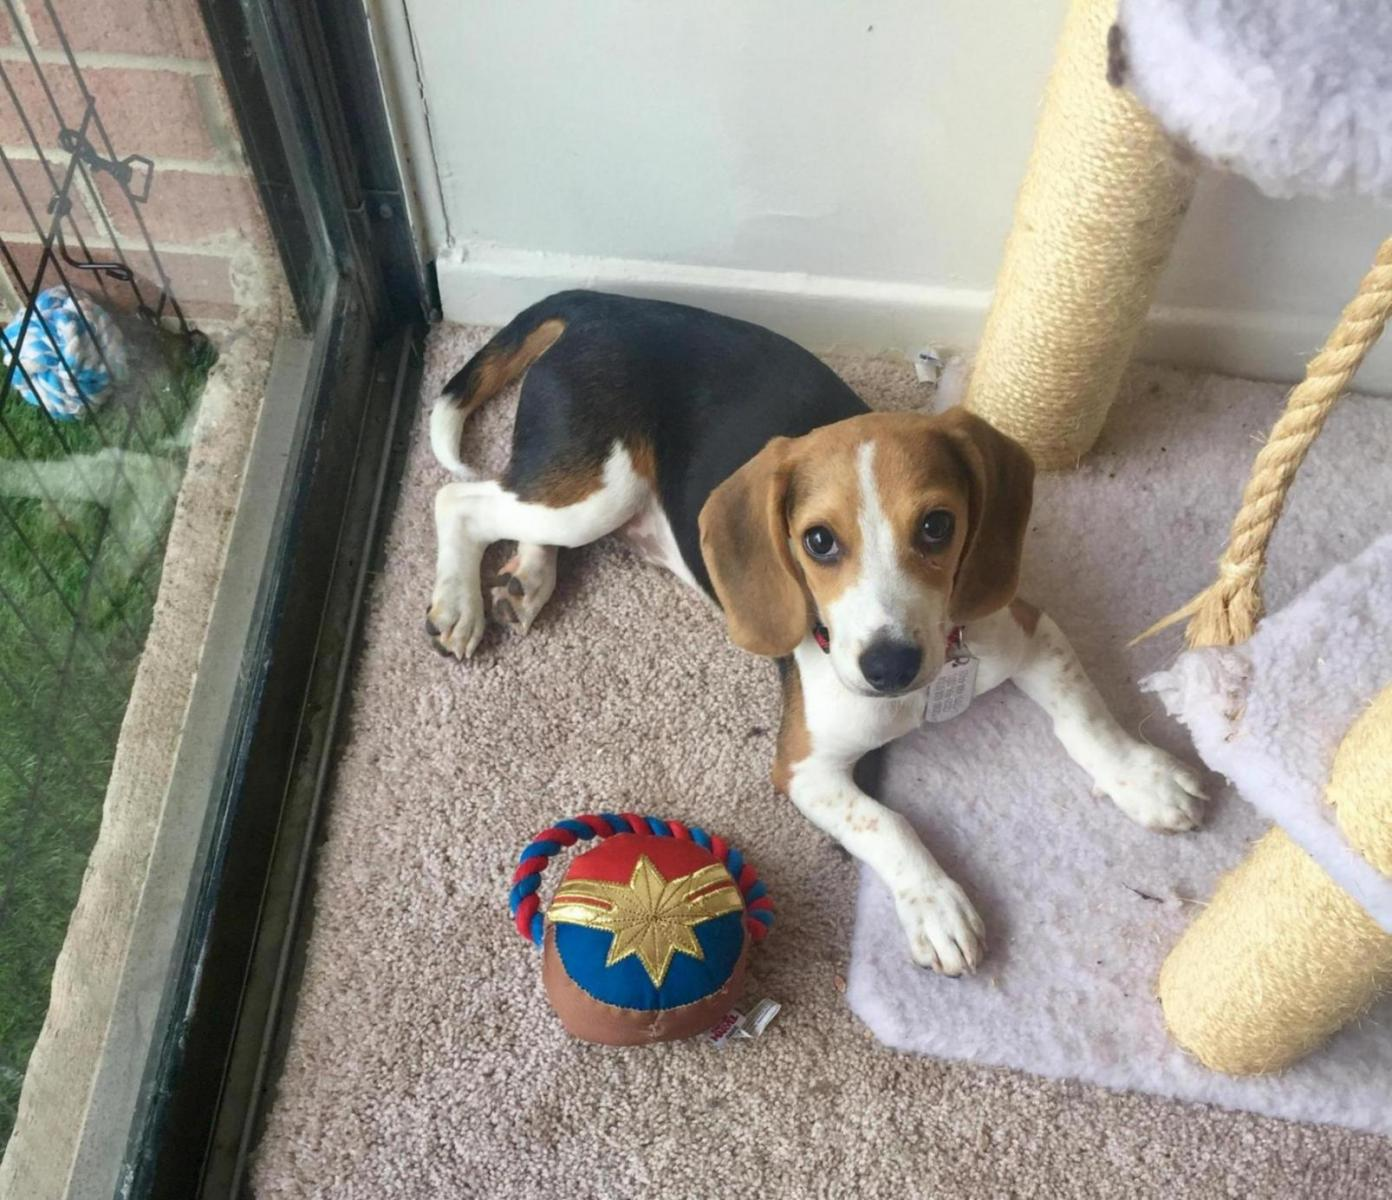 Is This Normal?-fdff2eea-b855-4f50-a890-a100cb3fb73e_1565279512238.jpg